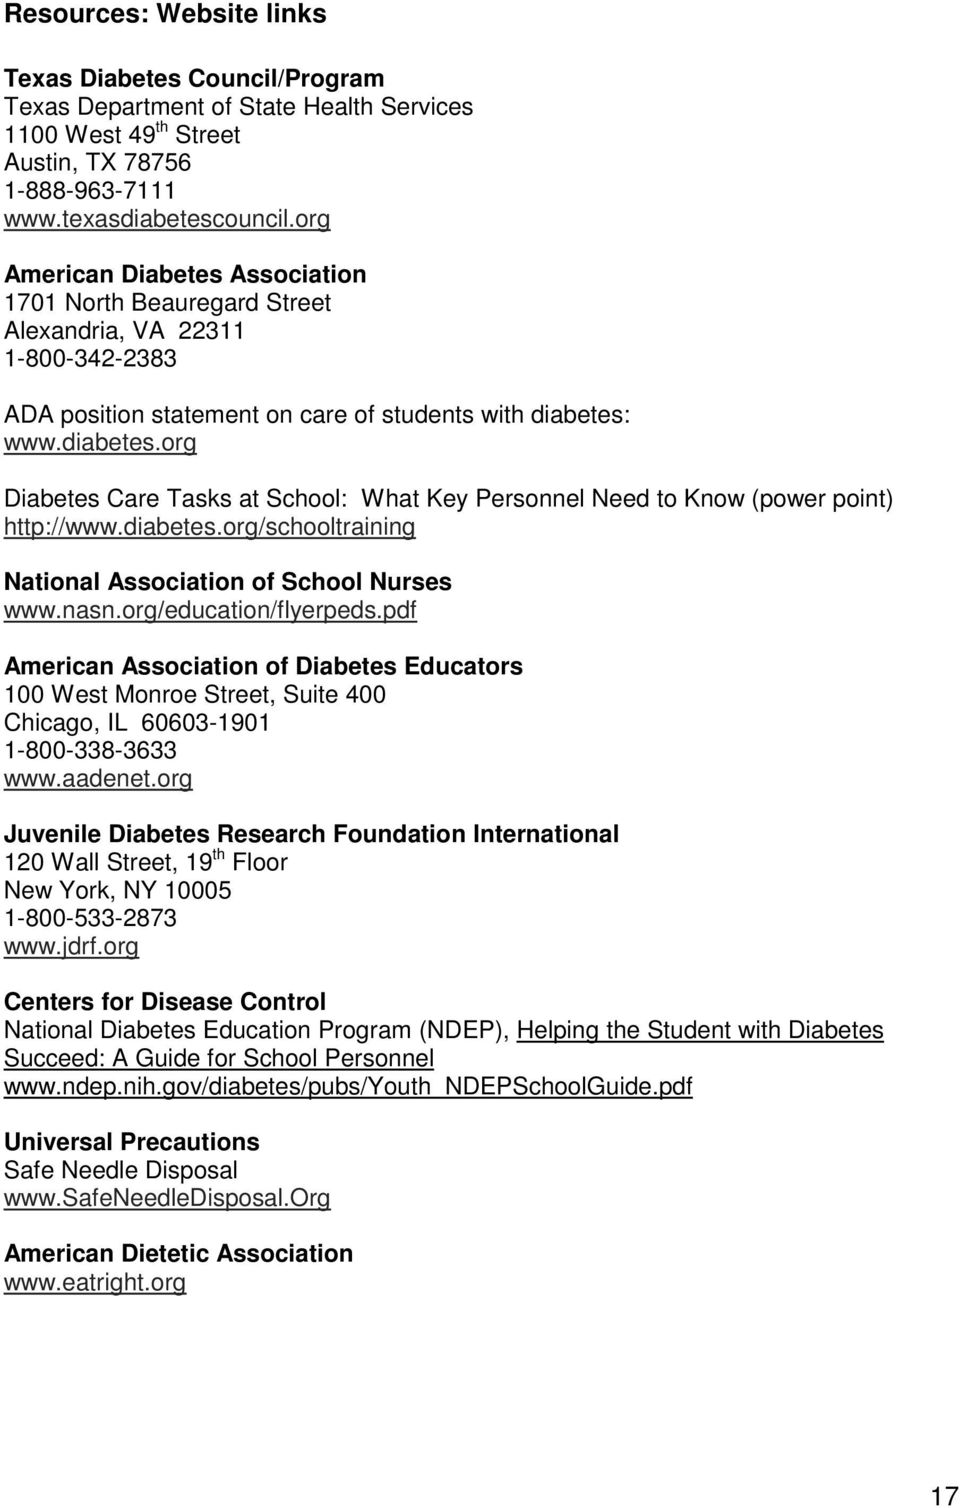 www.diabetes.org Diabetes Care Tasks at School: What Key Personnel Need to Know (power point) http://www.diabetes.org/schooltraining National Association of School Nurses www.nasn.